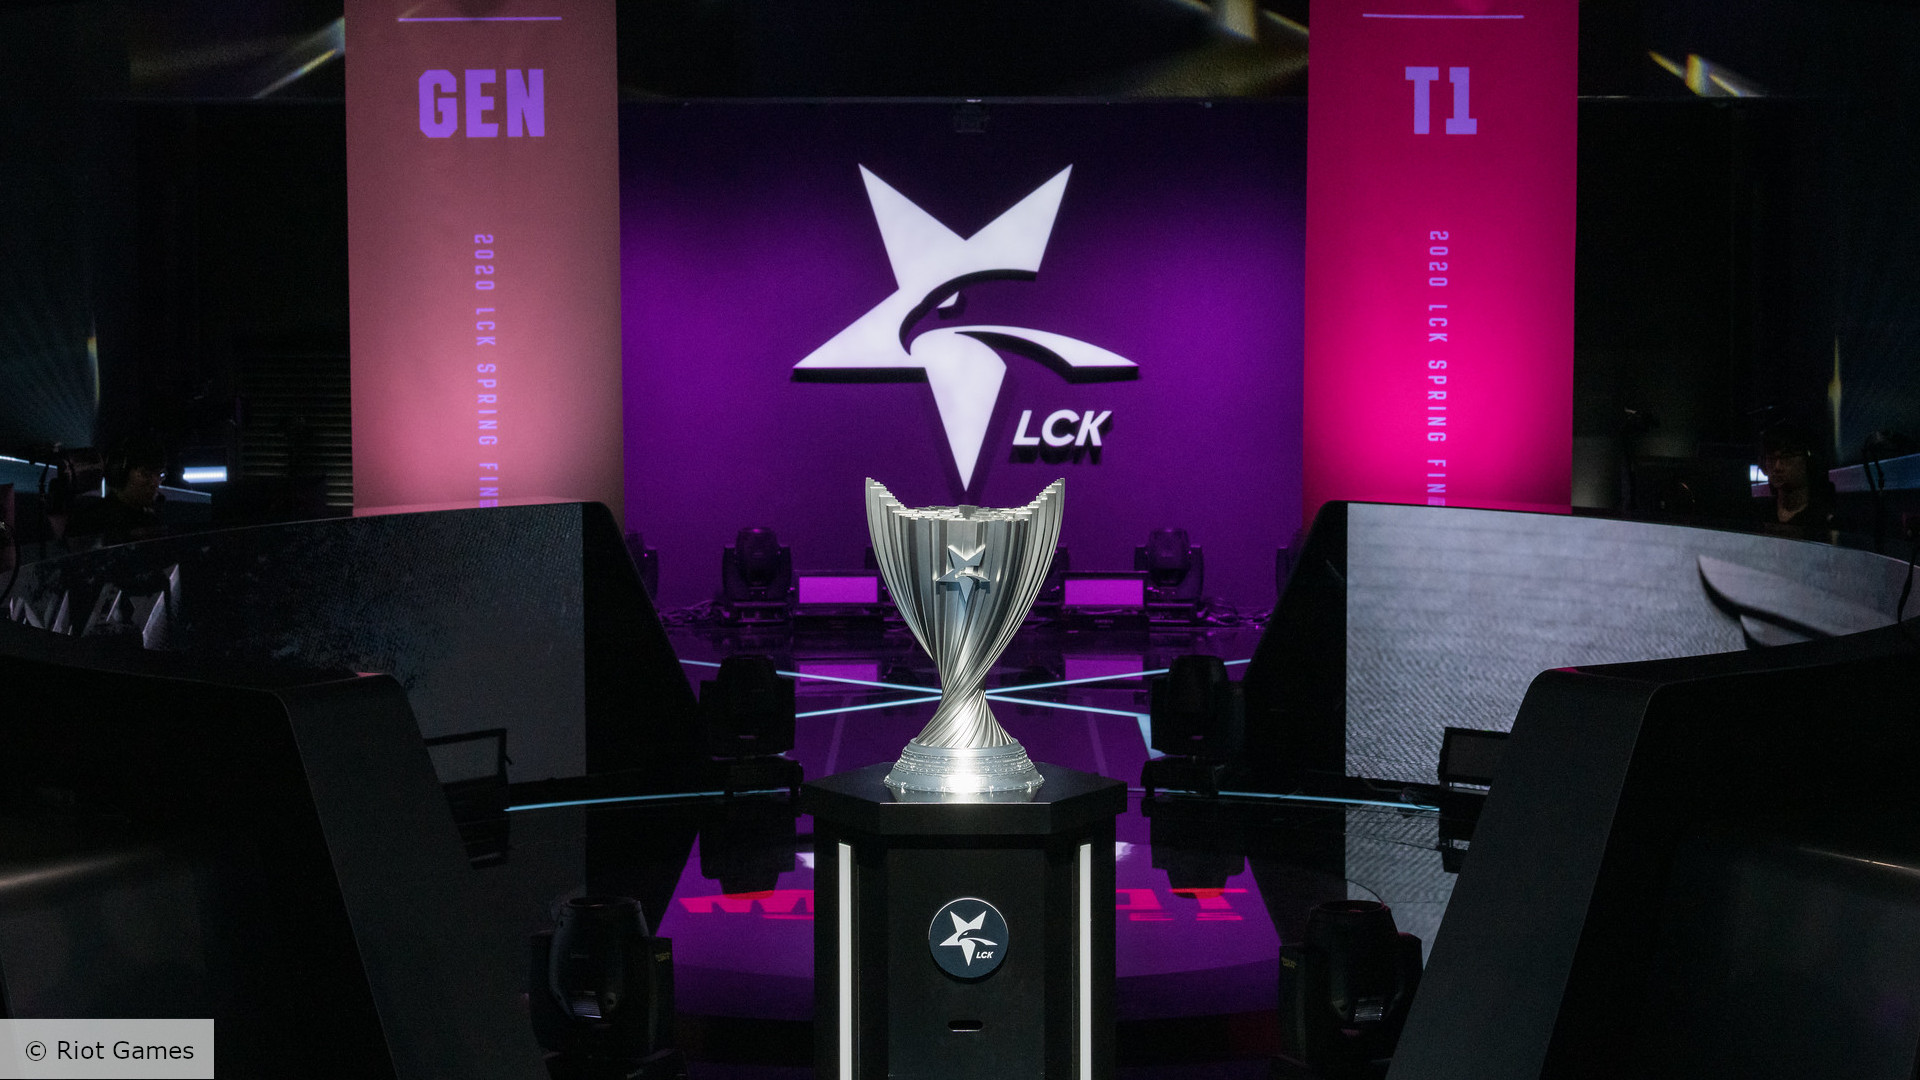 FaZe Clan, Pittsburgh Knights, and NRG are looking to join the LCK in 2021